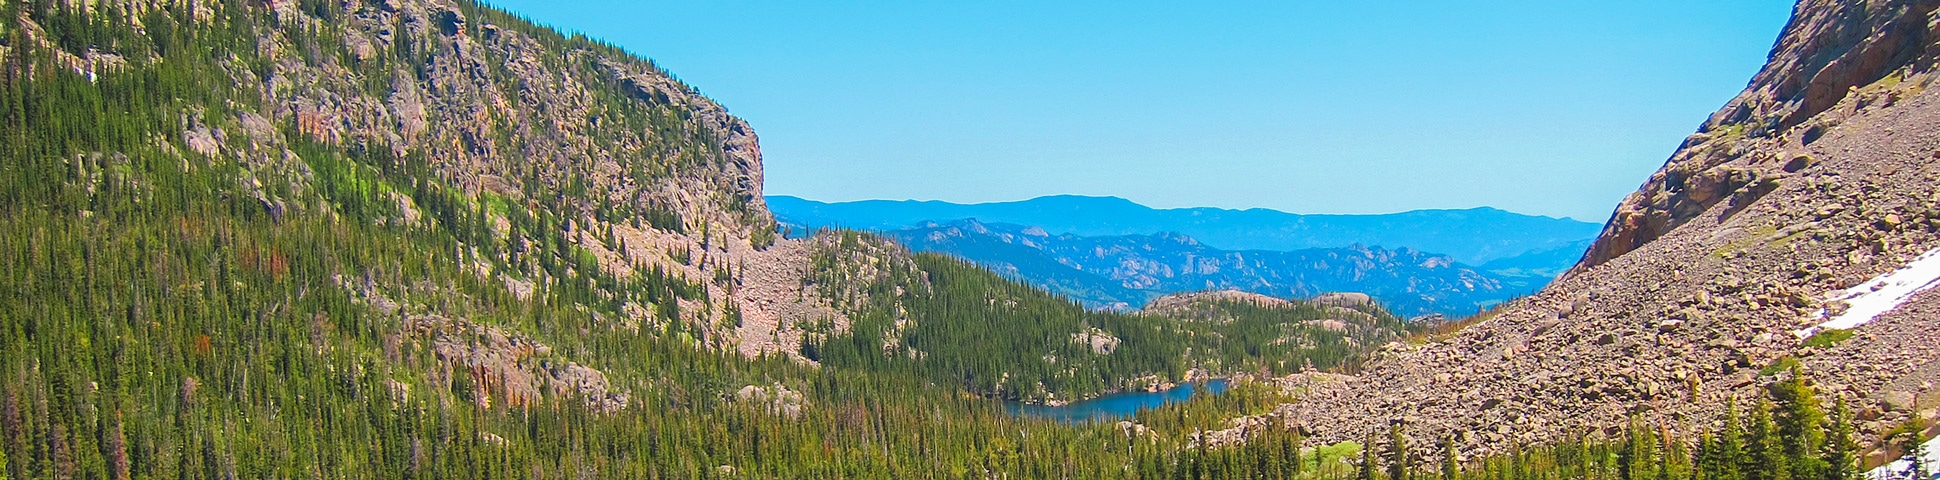 Panoramic views on Sky Pond and Lake of Glass hike in Rocky Mountain National Park, Colorado